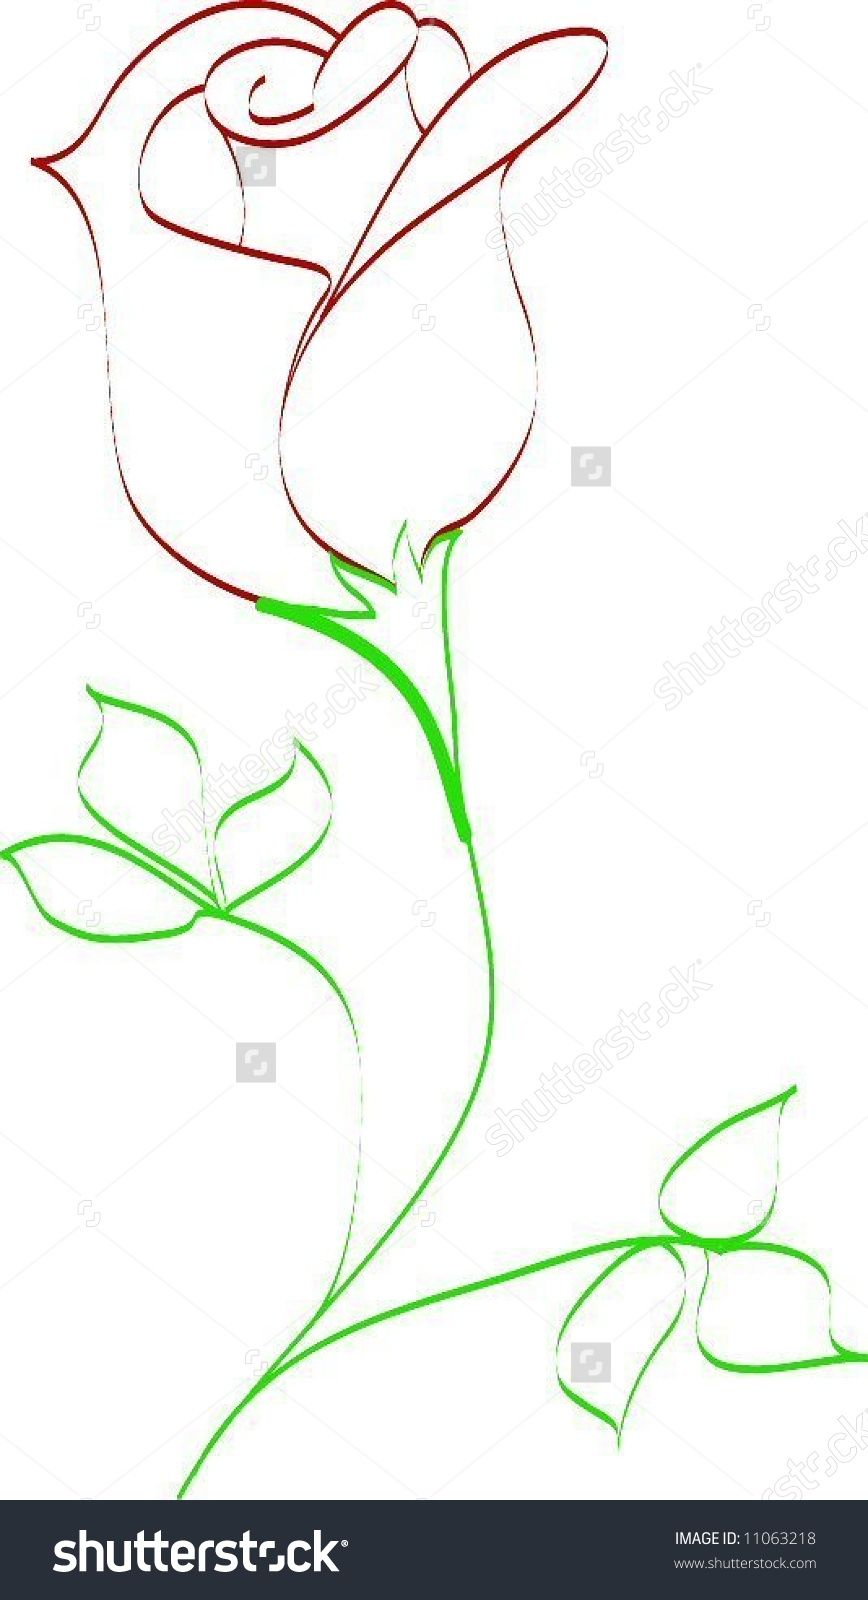 How To Draw A Rose Bud : Simple, Drawing, Stock, Vector, Illustration, 11063218, Flower, Drawing,, Roses, Drawings